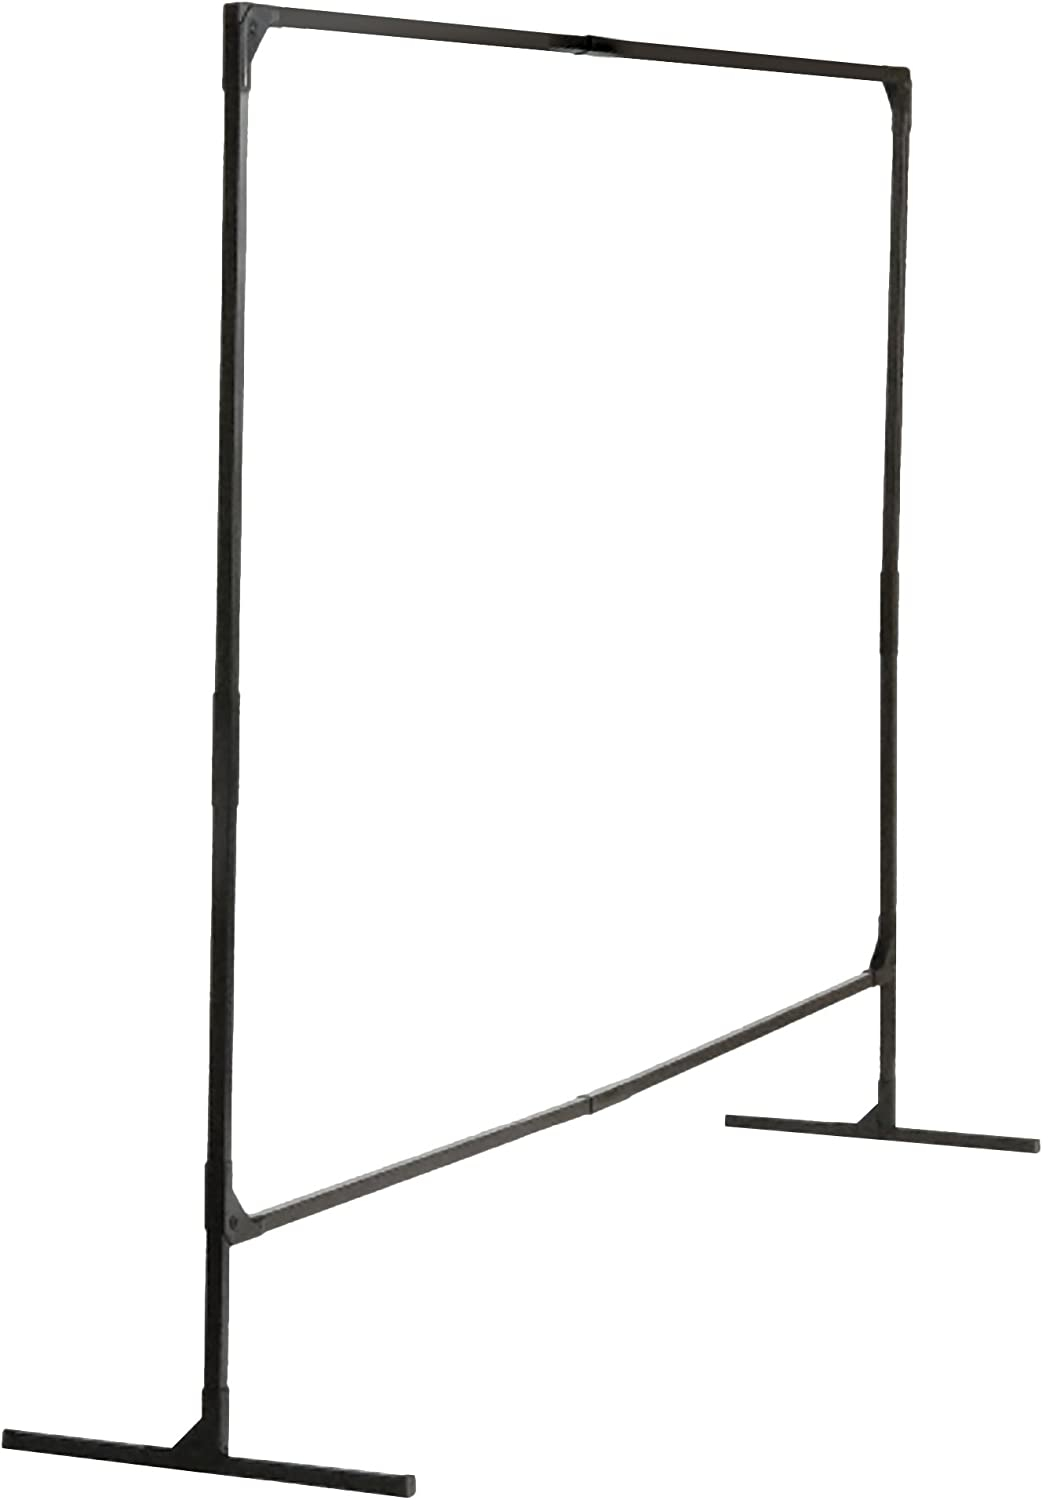 part# R1066-00 Stur-D-Screen Frames Wth 6 ft